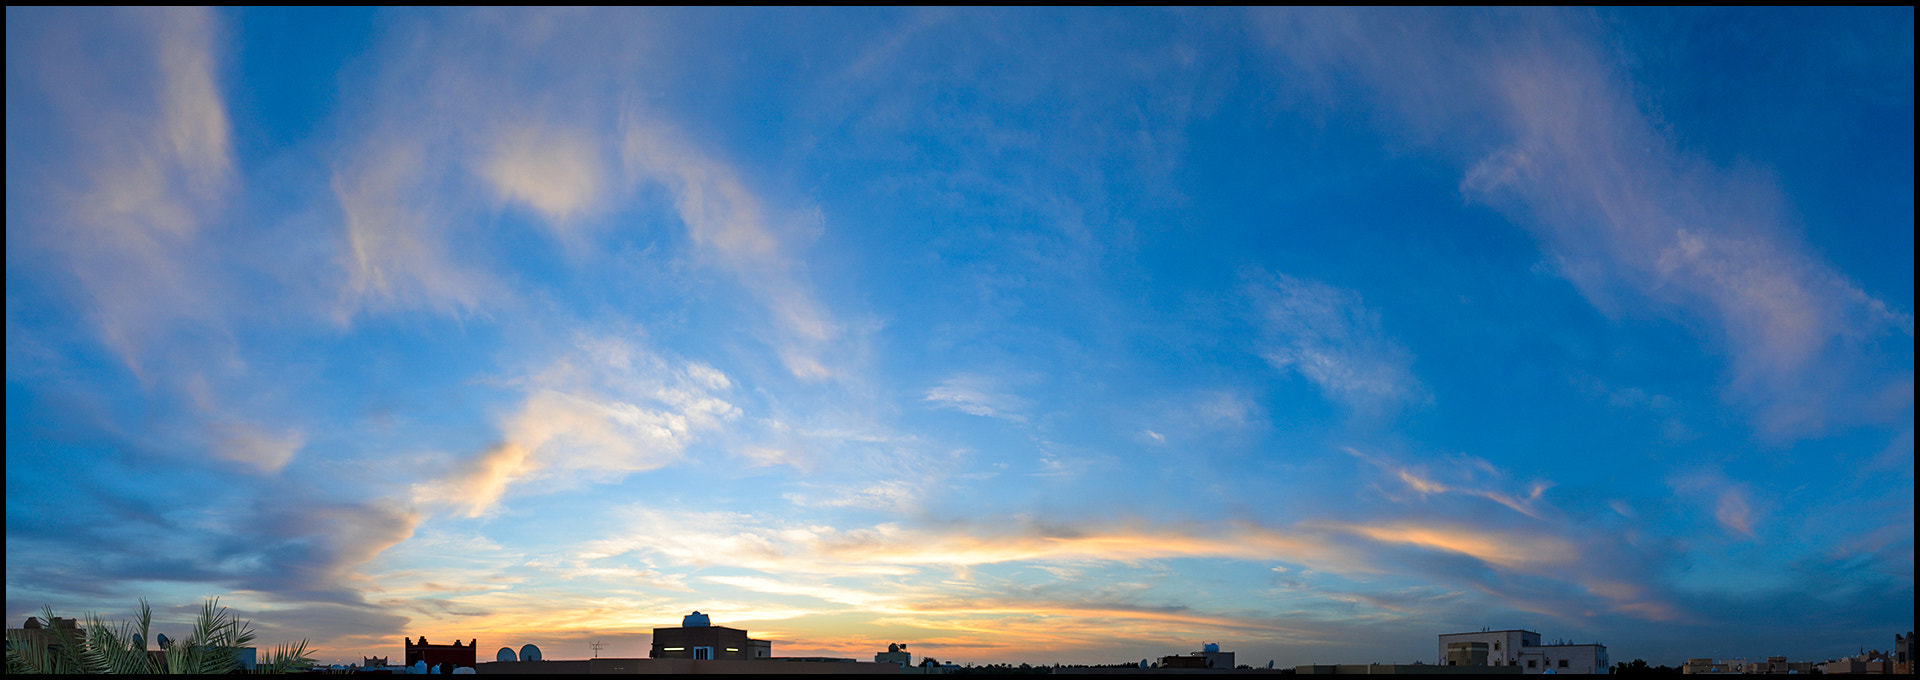 Photograph Panorama Sky by Hussain Ali on 500px